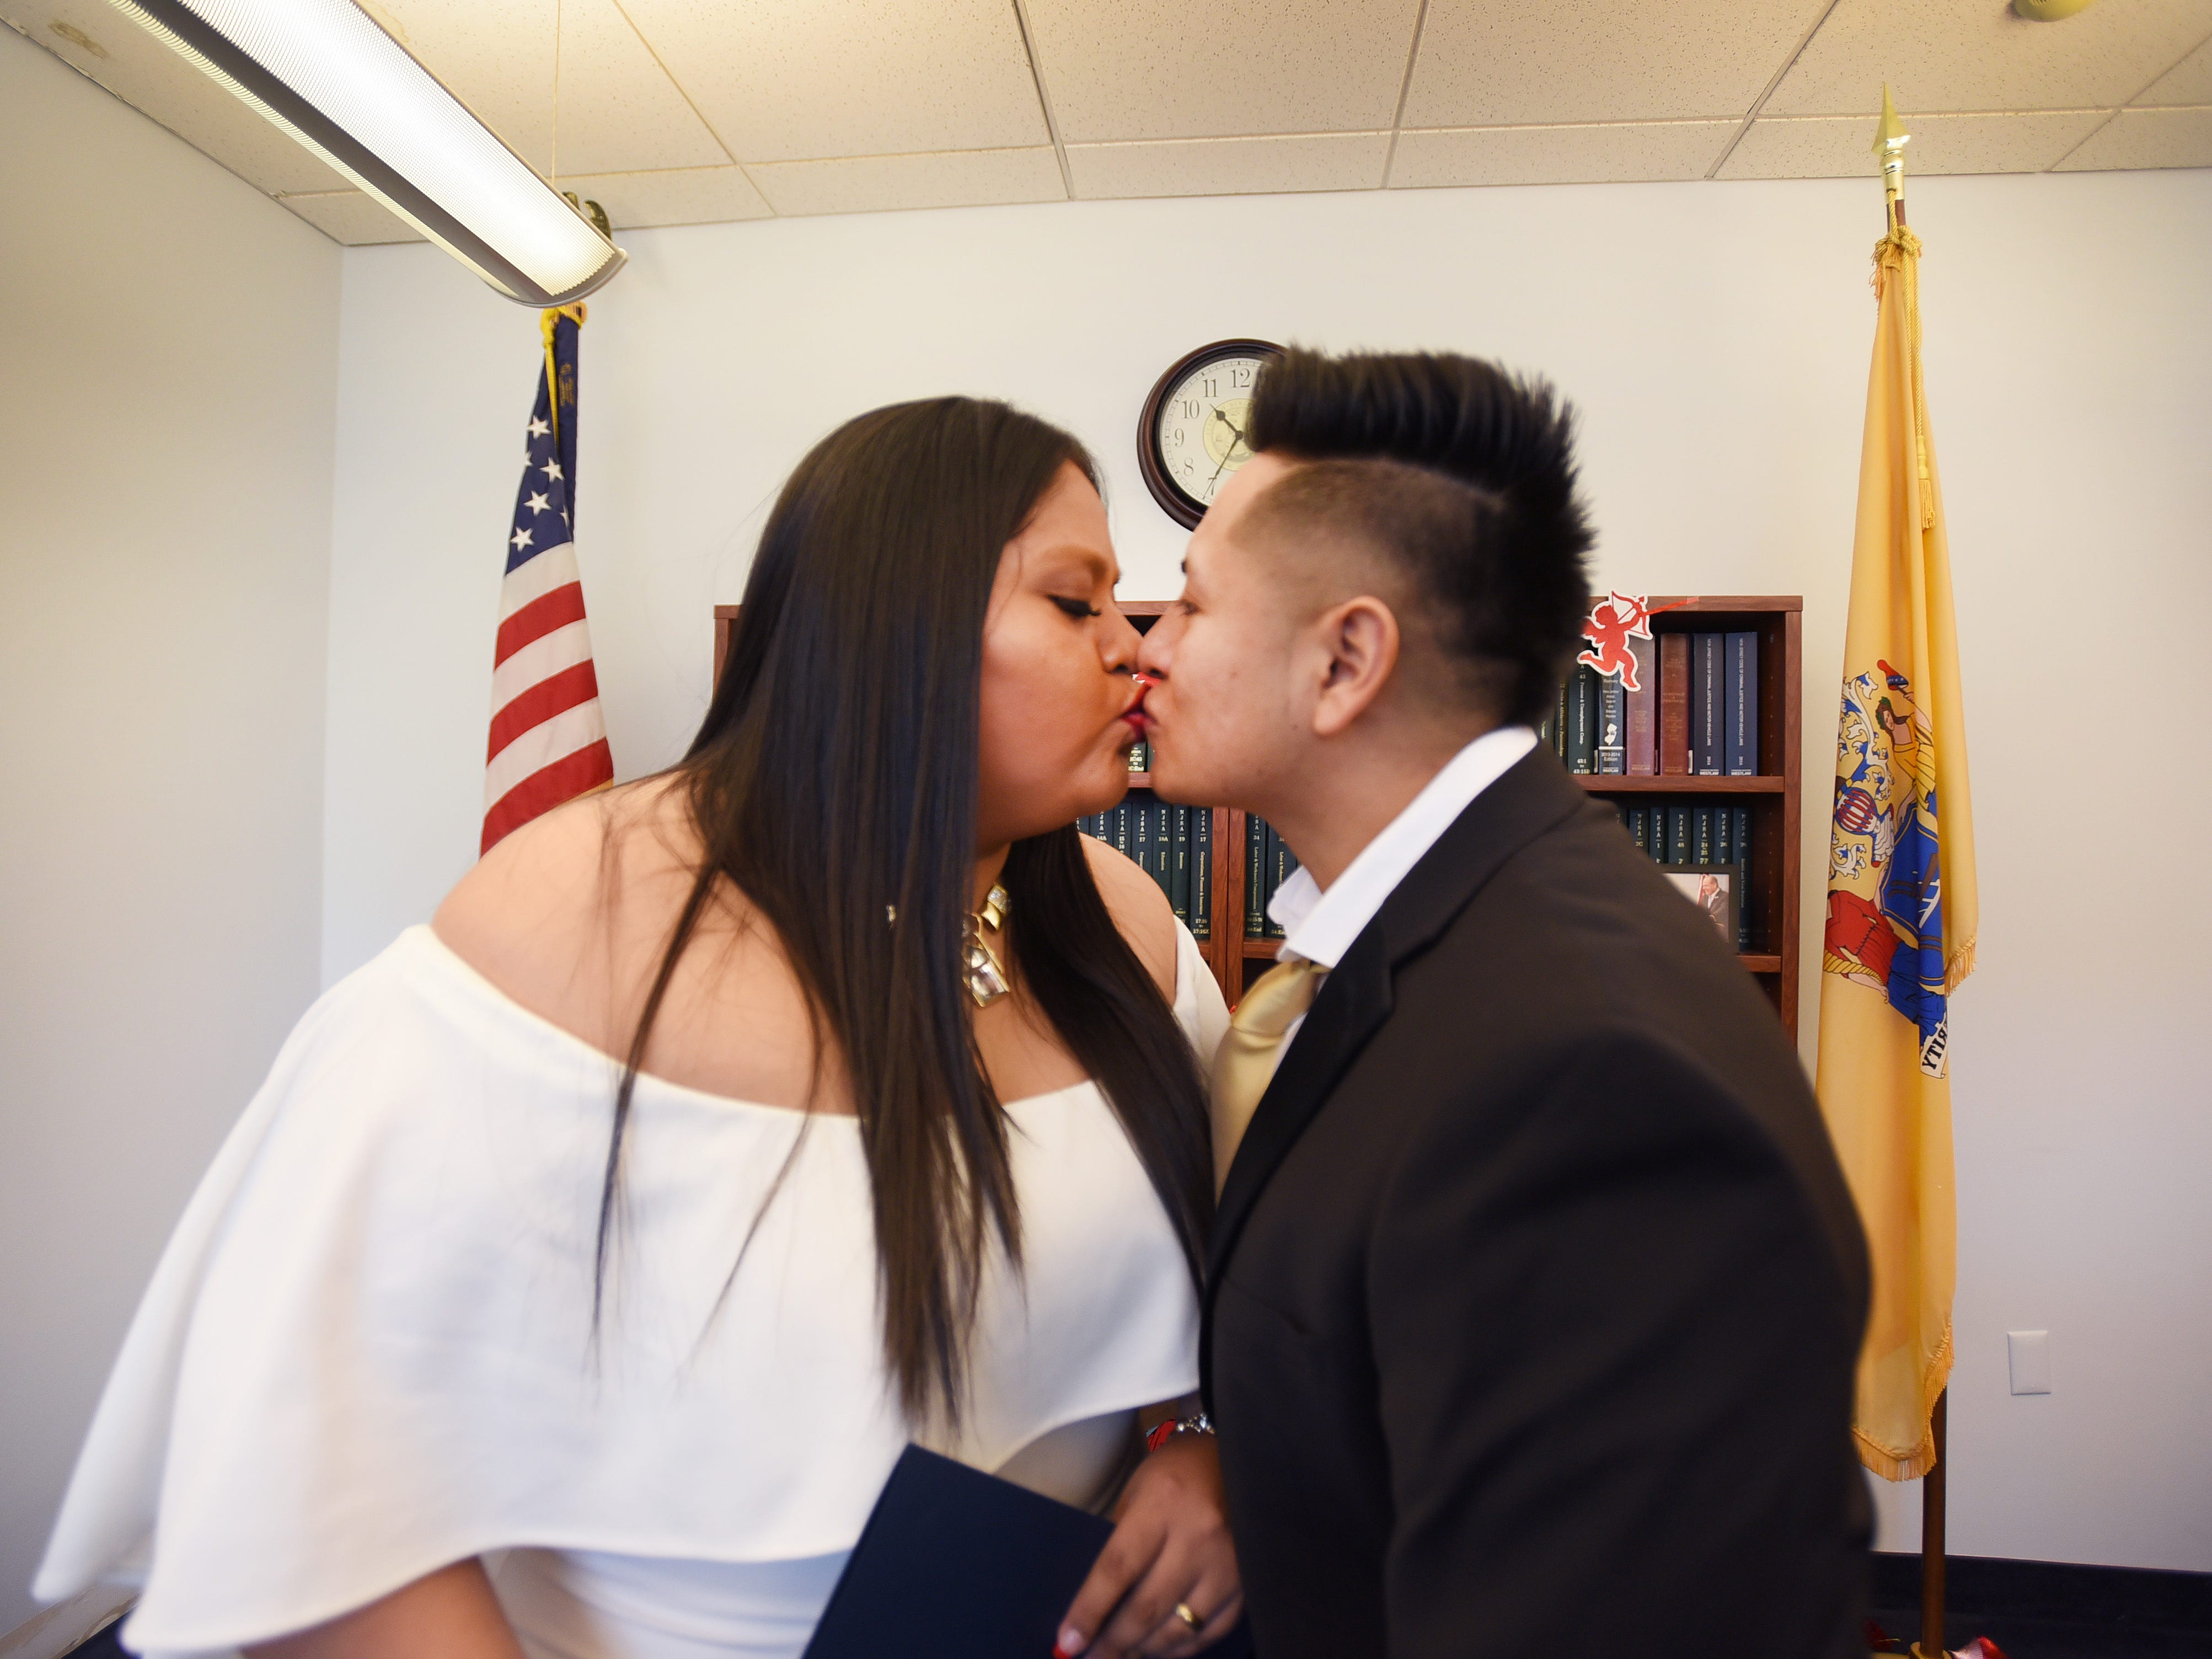 Yesenia Urgiles and Cesar Guartan of Hackensack, kiss together right after being announced as a husband and a wife by Bergen County Clerk John S. Hogan during their wedding ceremony, located at Bergen County Plaza in Hackensack on 02/14/19.